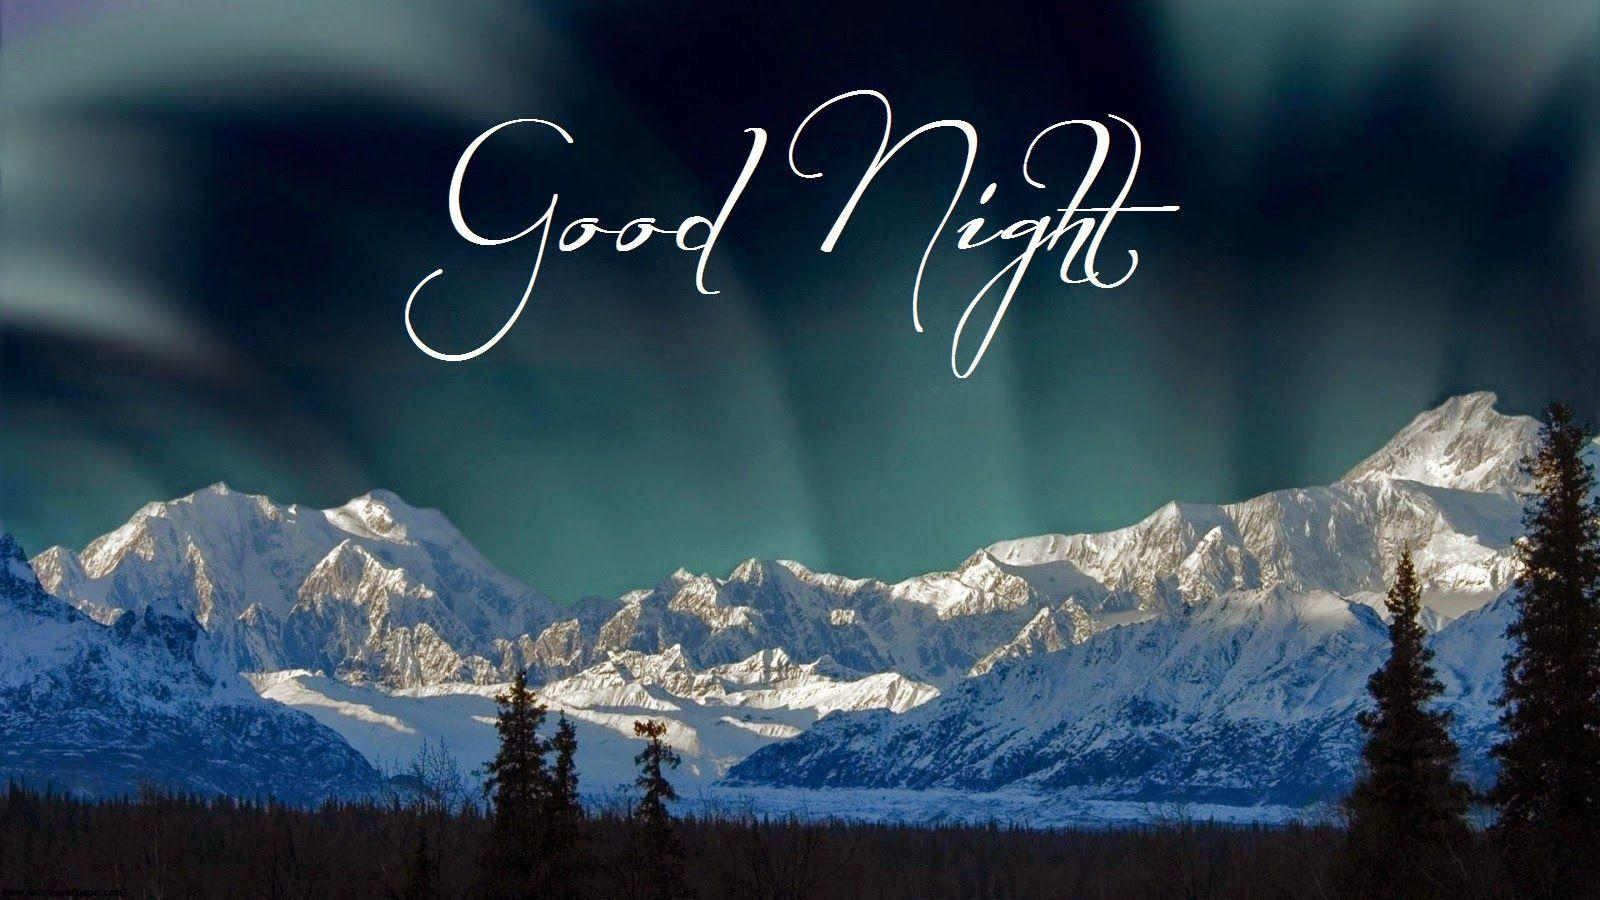 good night wallpapers hd - wallpaper cave